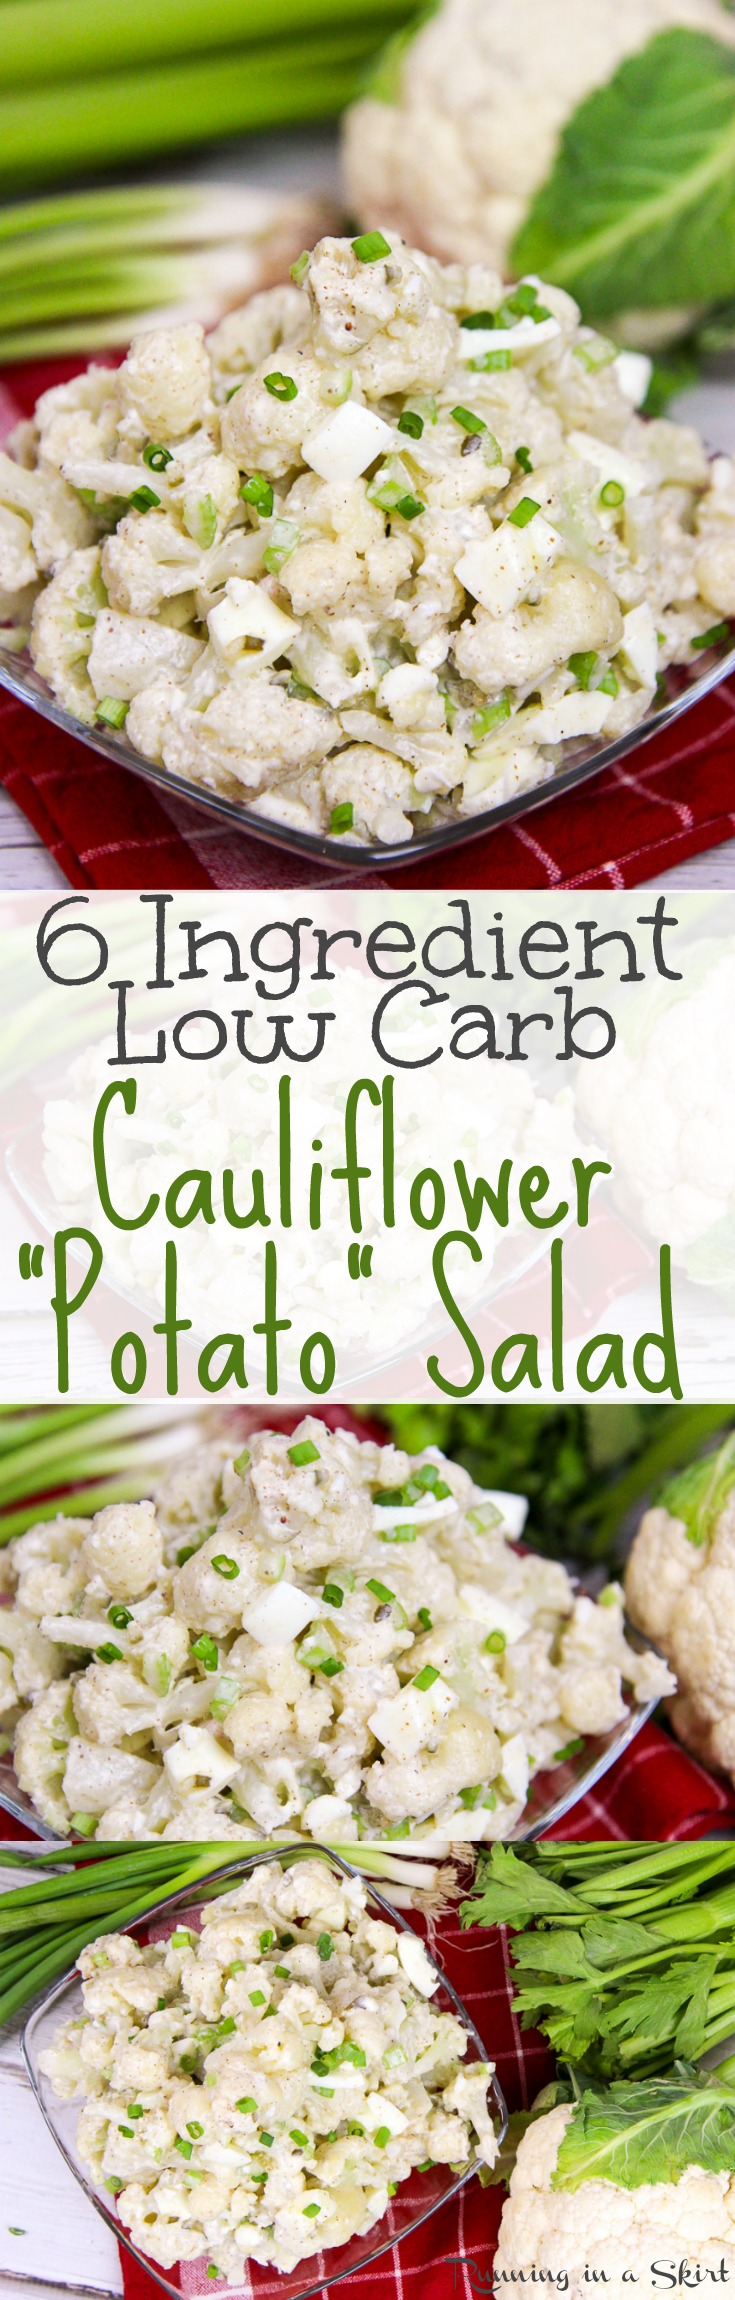 6 Ingredient Healthy Low Carb Cauliflower Potato Salad recipe! Also low calorie.. The best tasty, easy mock potato salad using greek yogurt (no mayo!)  A simple and nutritious twist on the classic comfort foods. / Running in a Skirt via @juliewunder